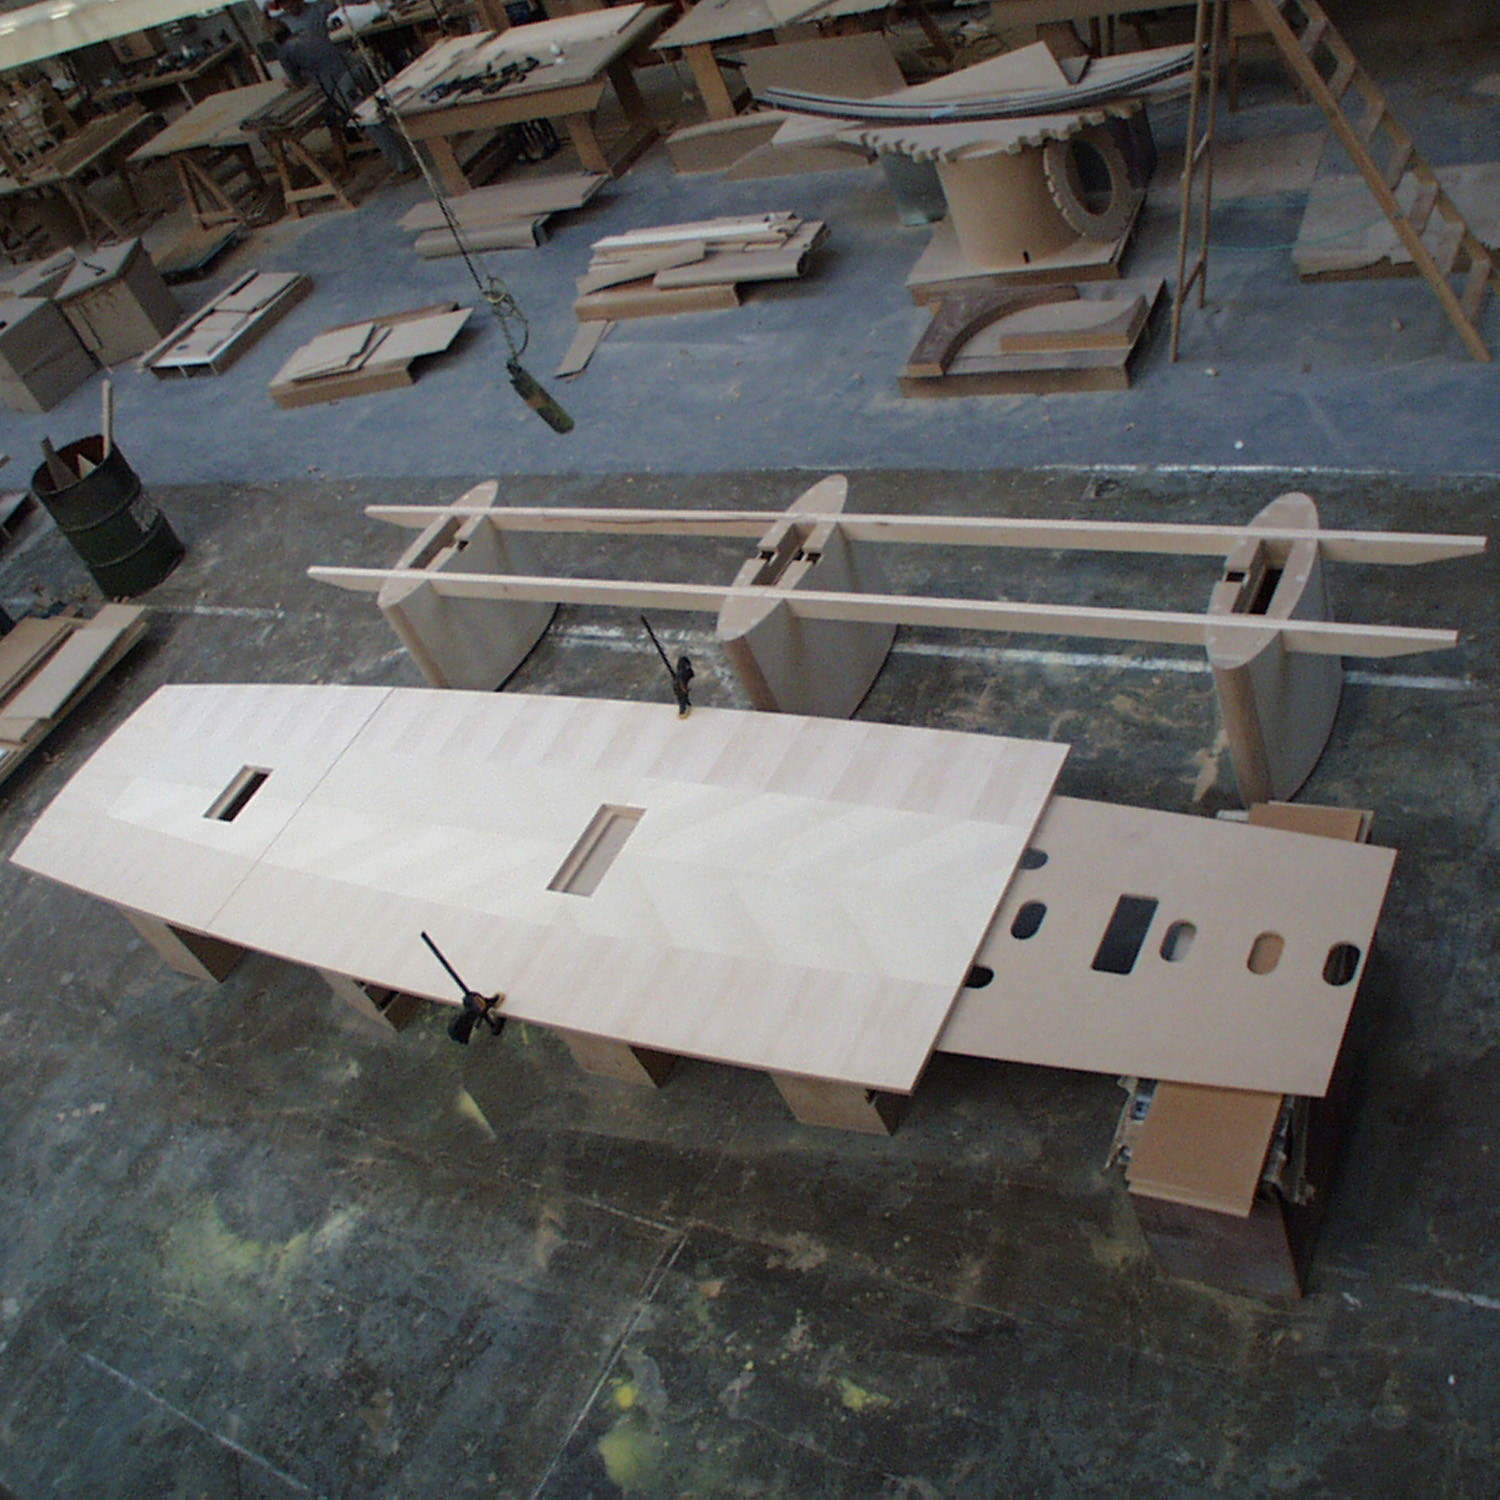 Bespoke Conference Table in production